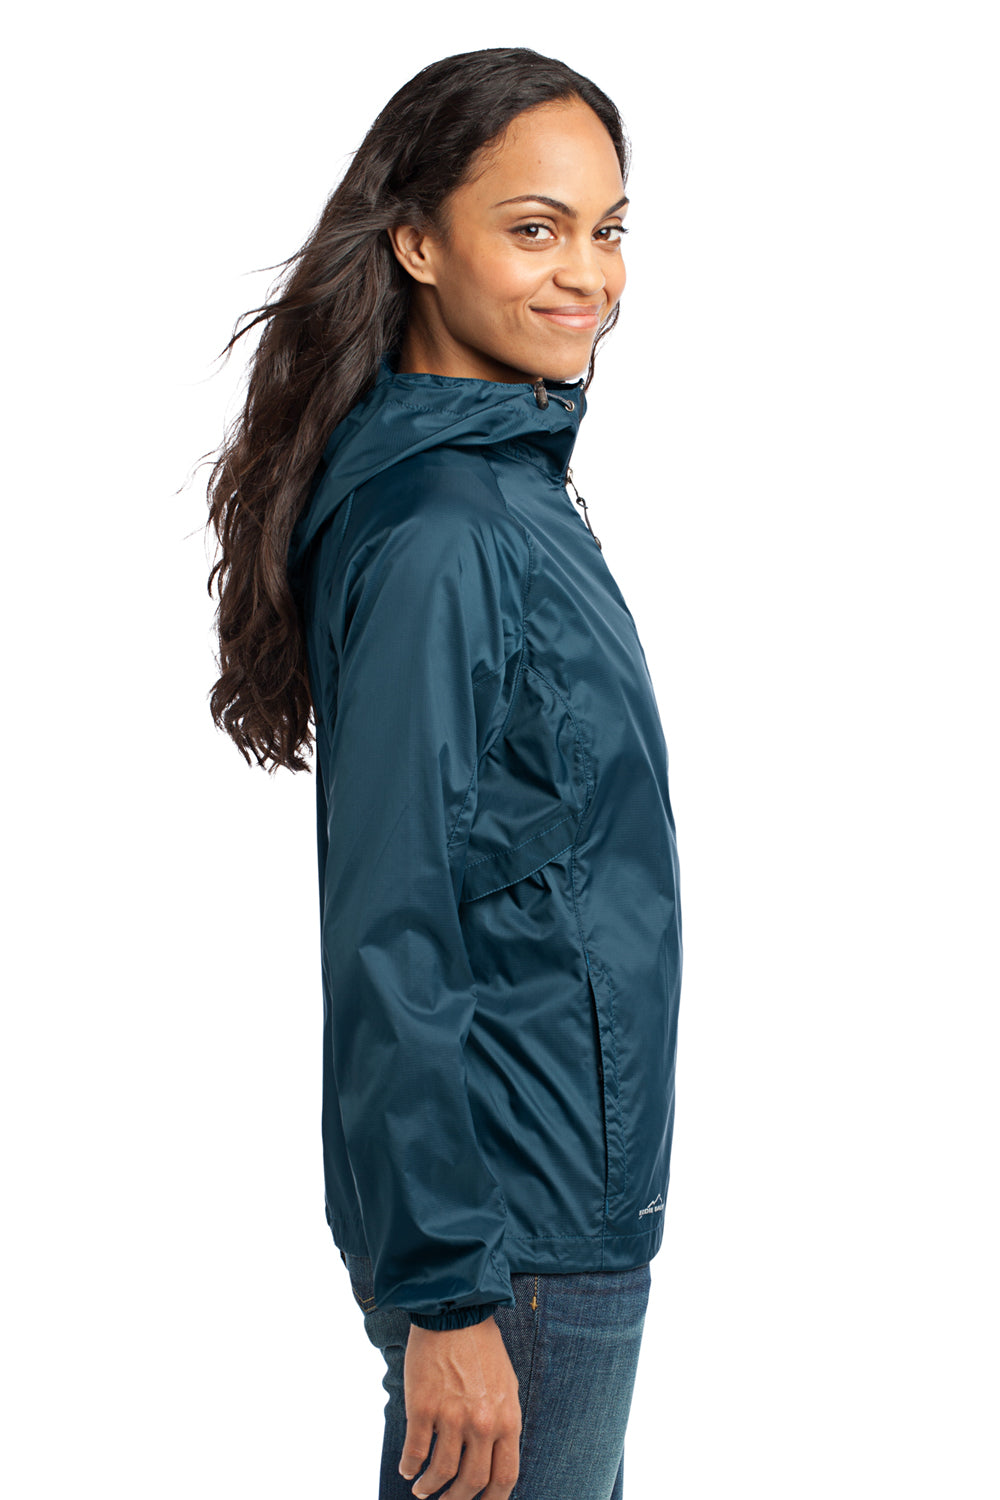 Eddie Bauer EB501 Womens Packable Wind Resistant Full Zip Hooded Wind Jacket Adriatic Blue Side